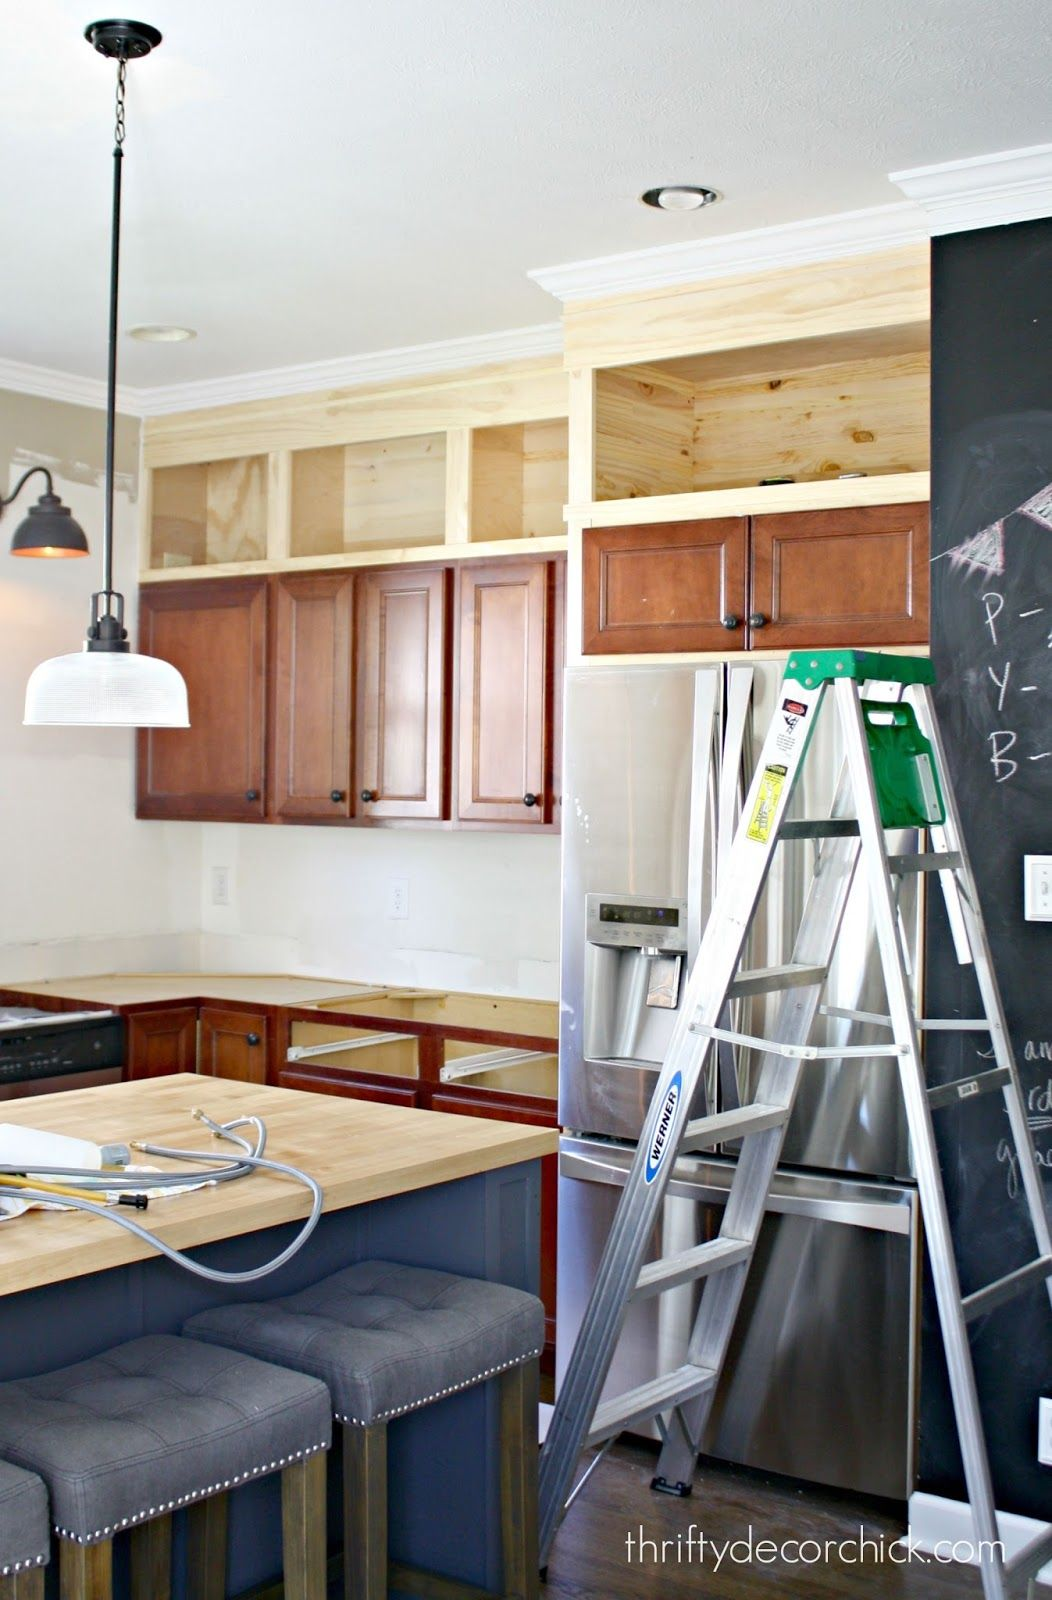 Should Kitchen Cabinets Go Up To Ceiling Building Cabinets Up To The Ceiling Diy Kitchen Cabinet